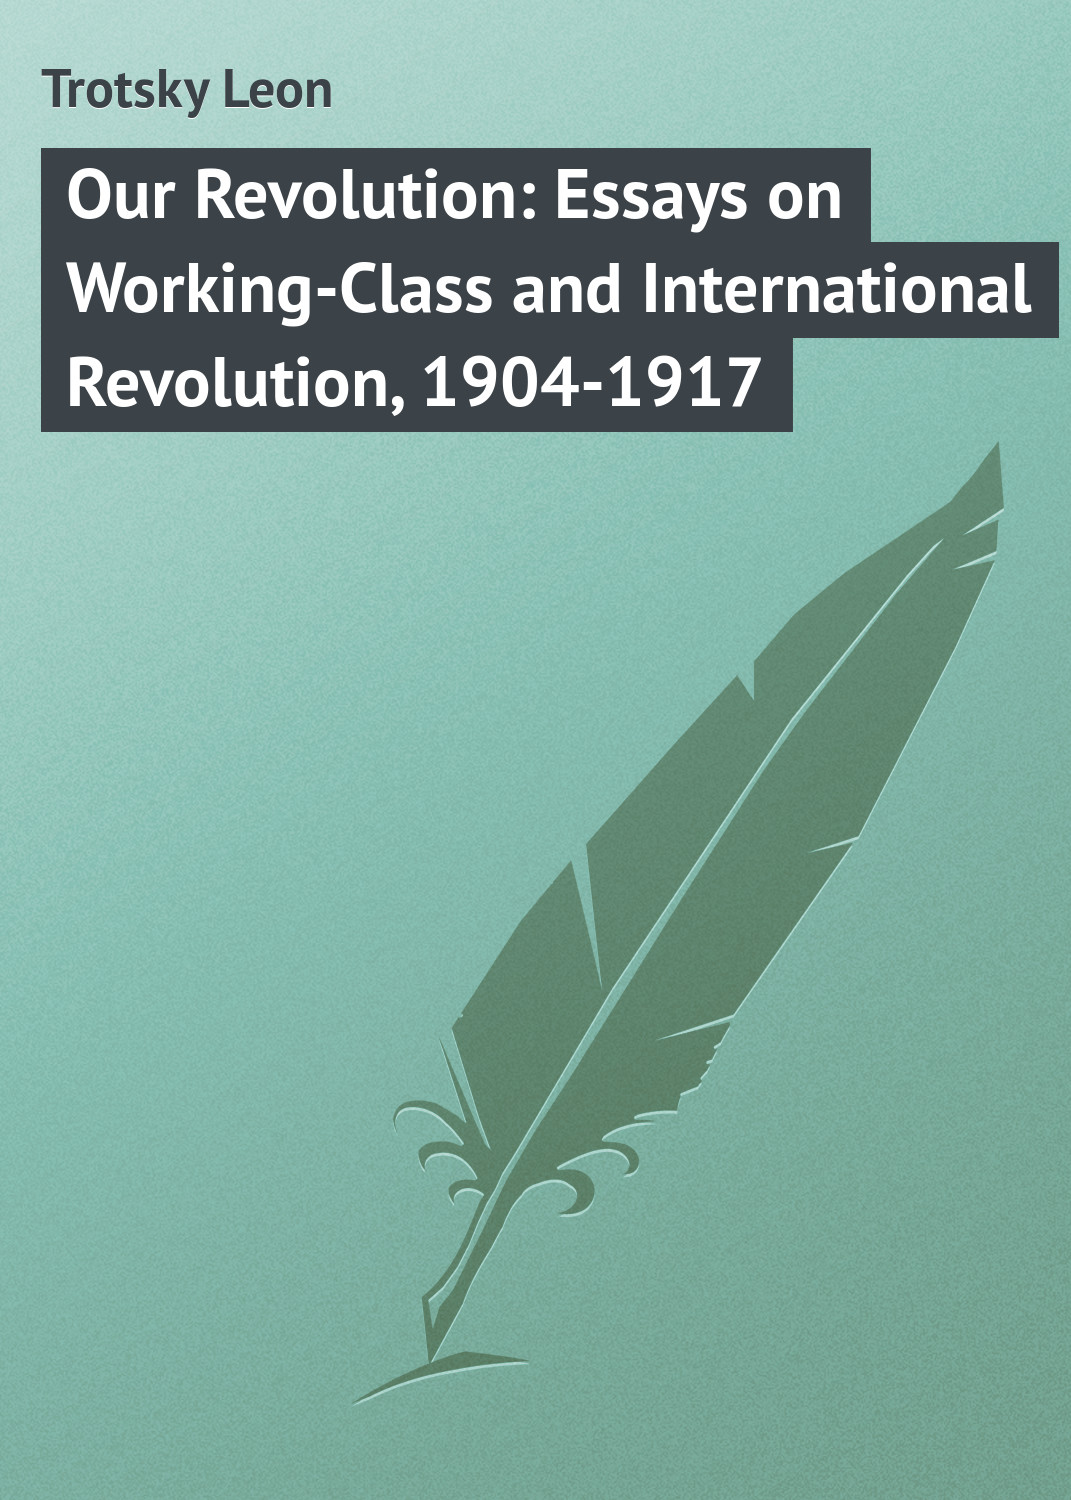 купить Trotsky Leon Our Revolution: Essays on Working-Class and International Revolution, 1904-1917 по цене 0 рублей